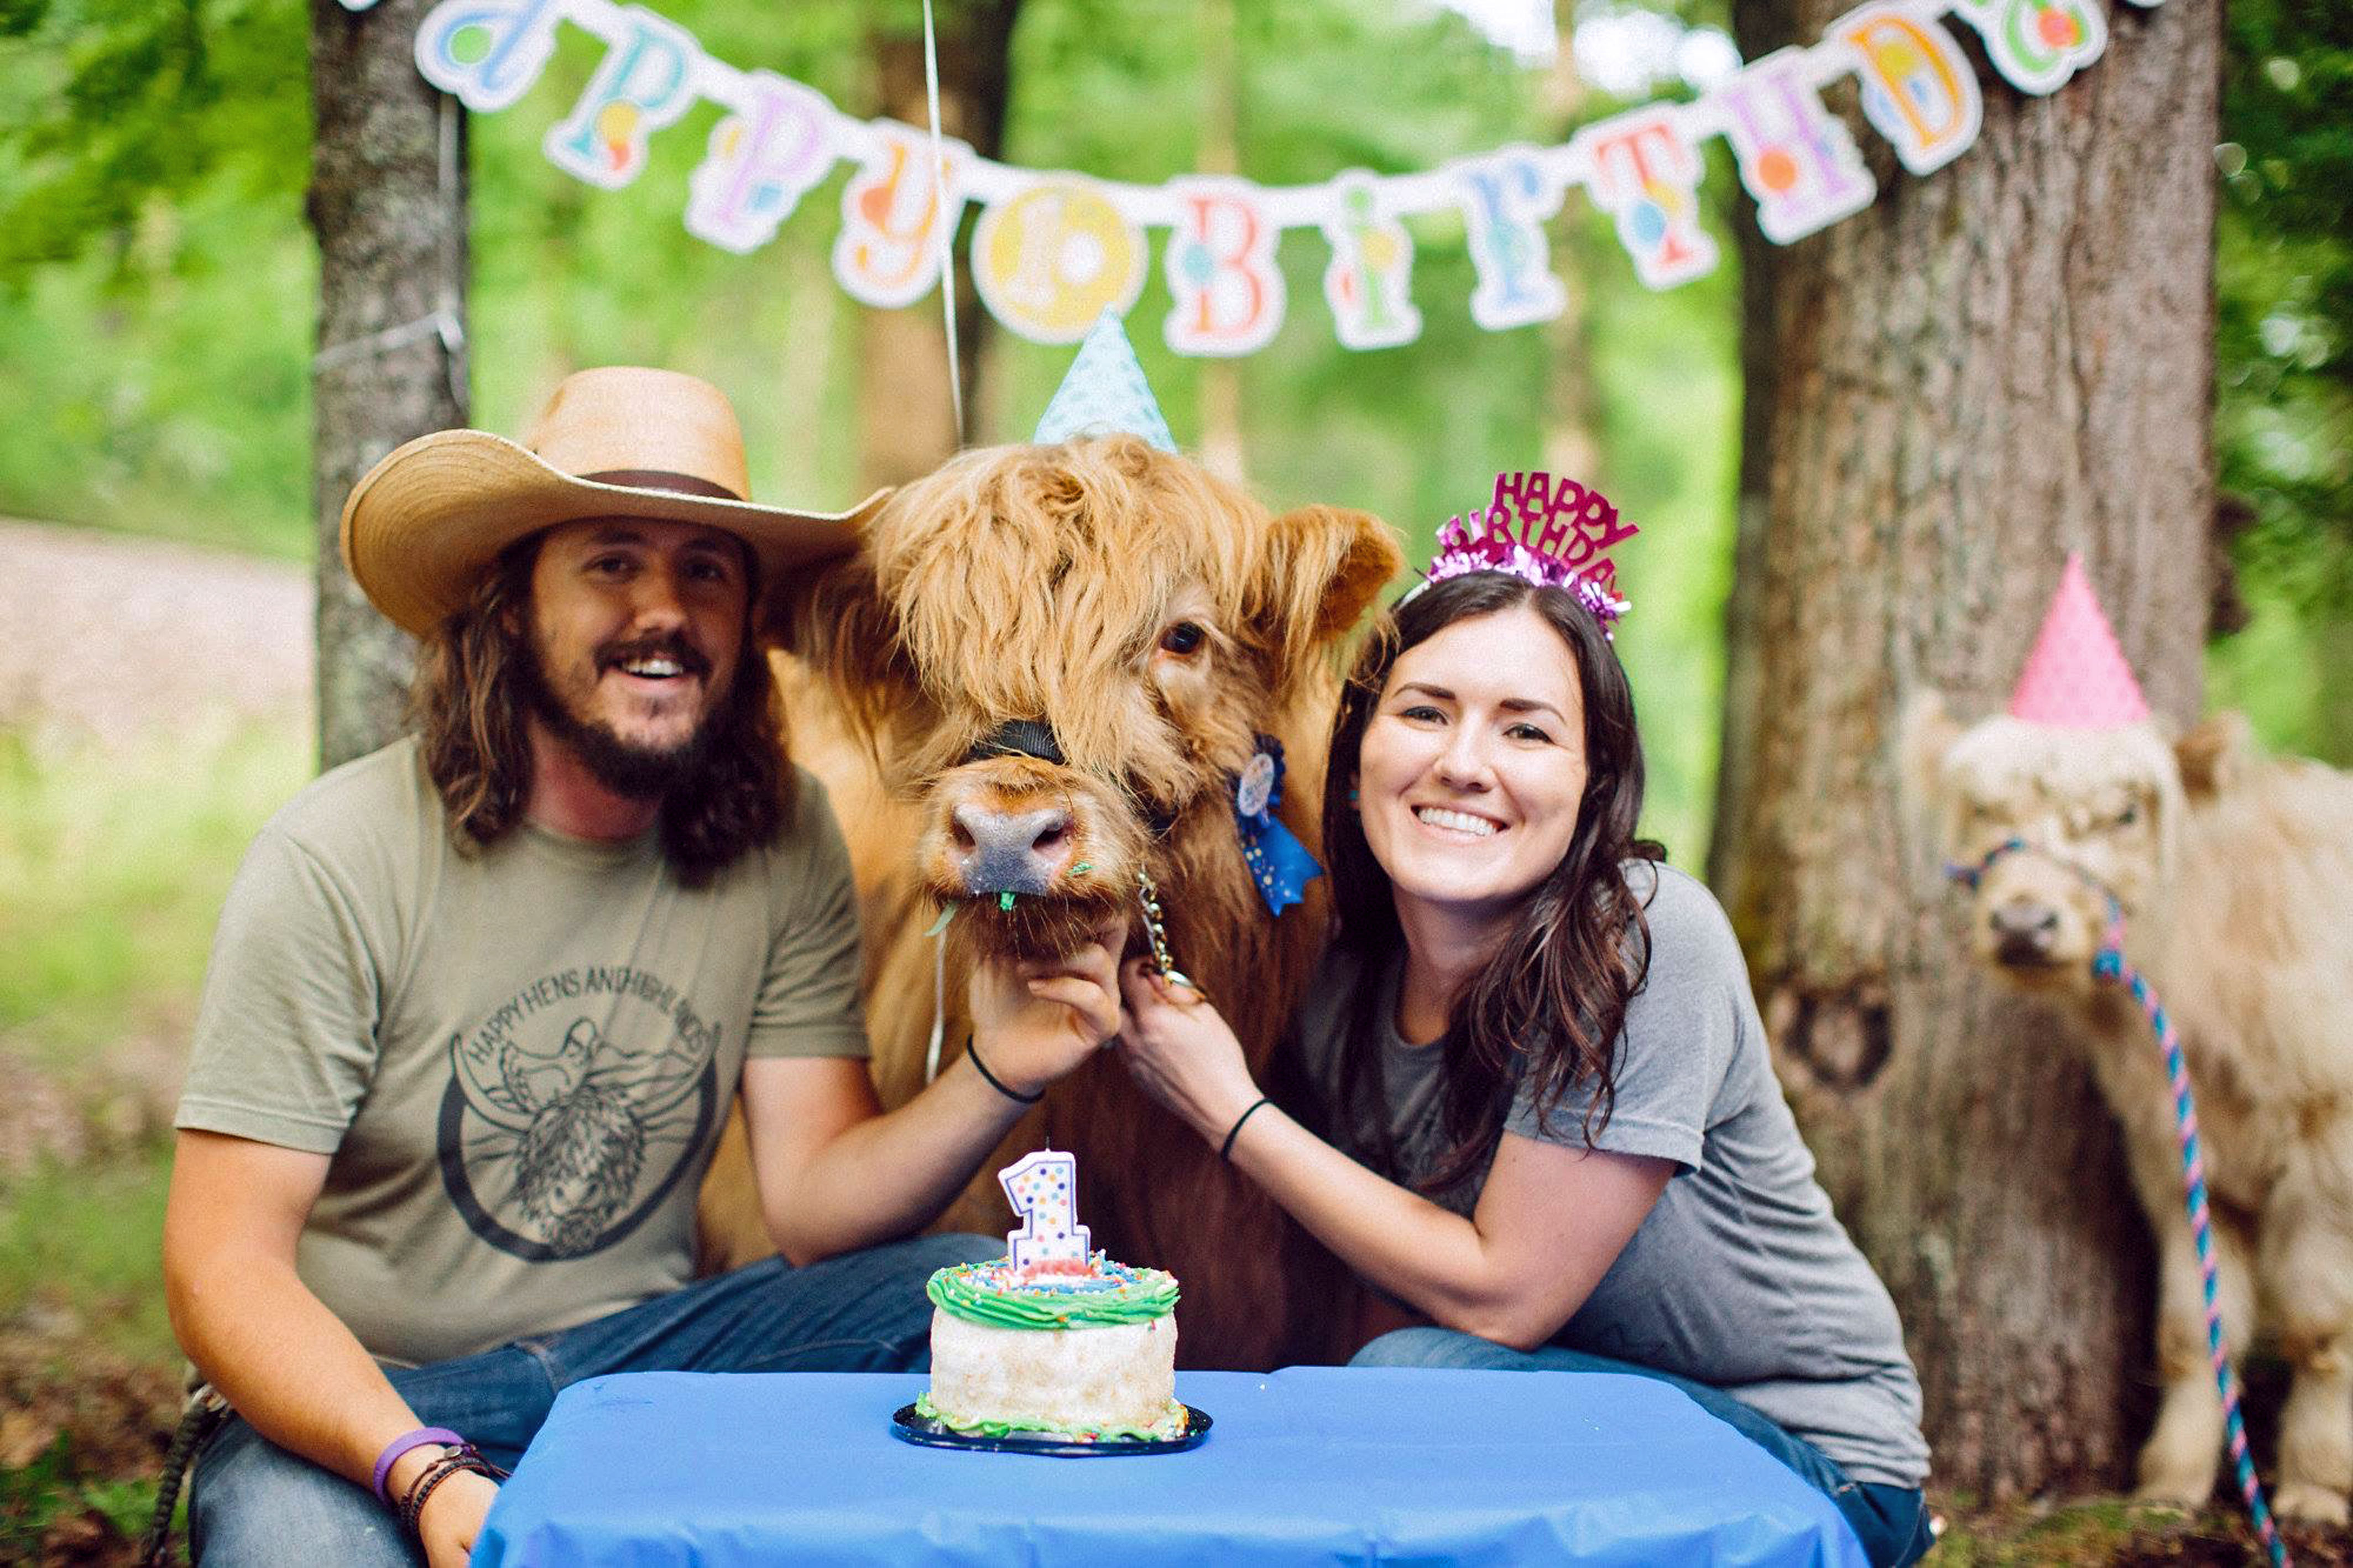 CUTE COW BIRTHDAY PARTY